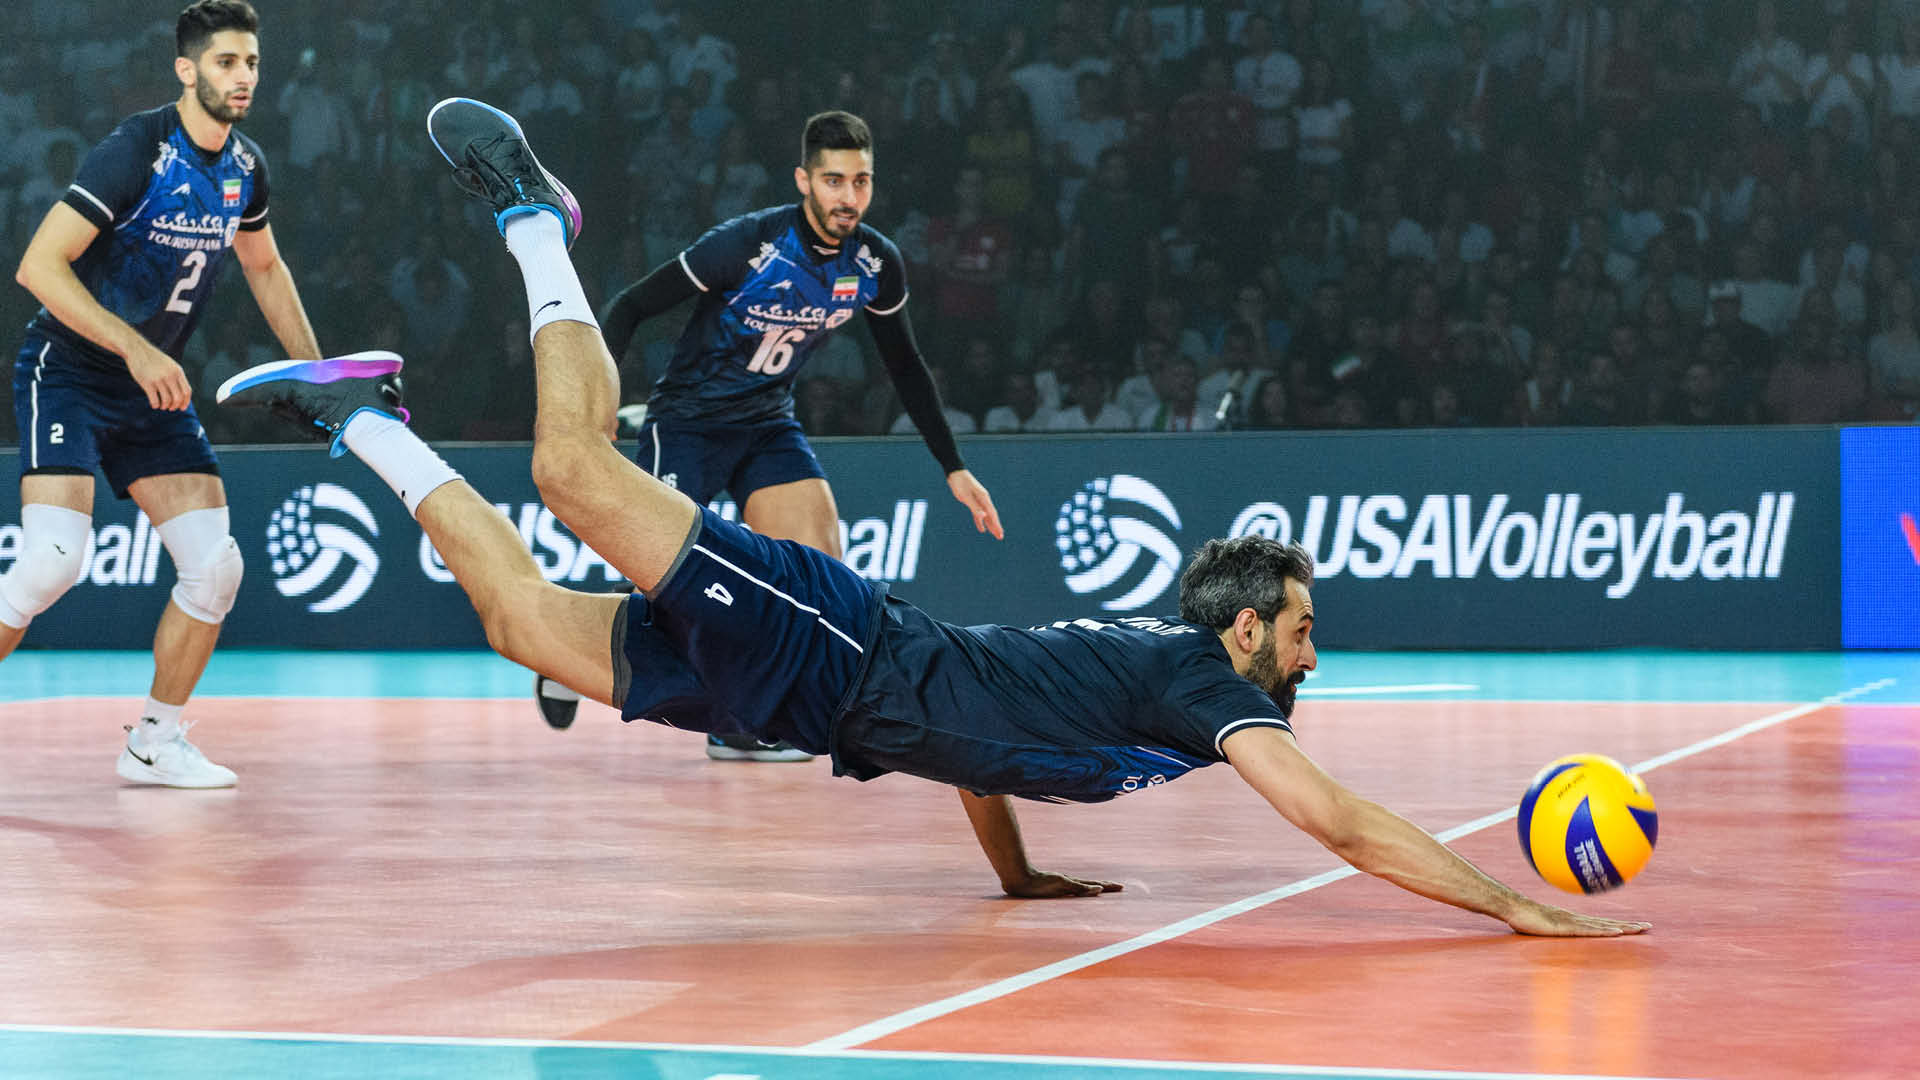 FIVB player diving